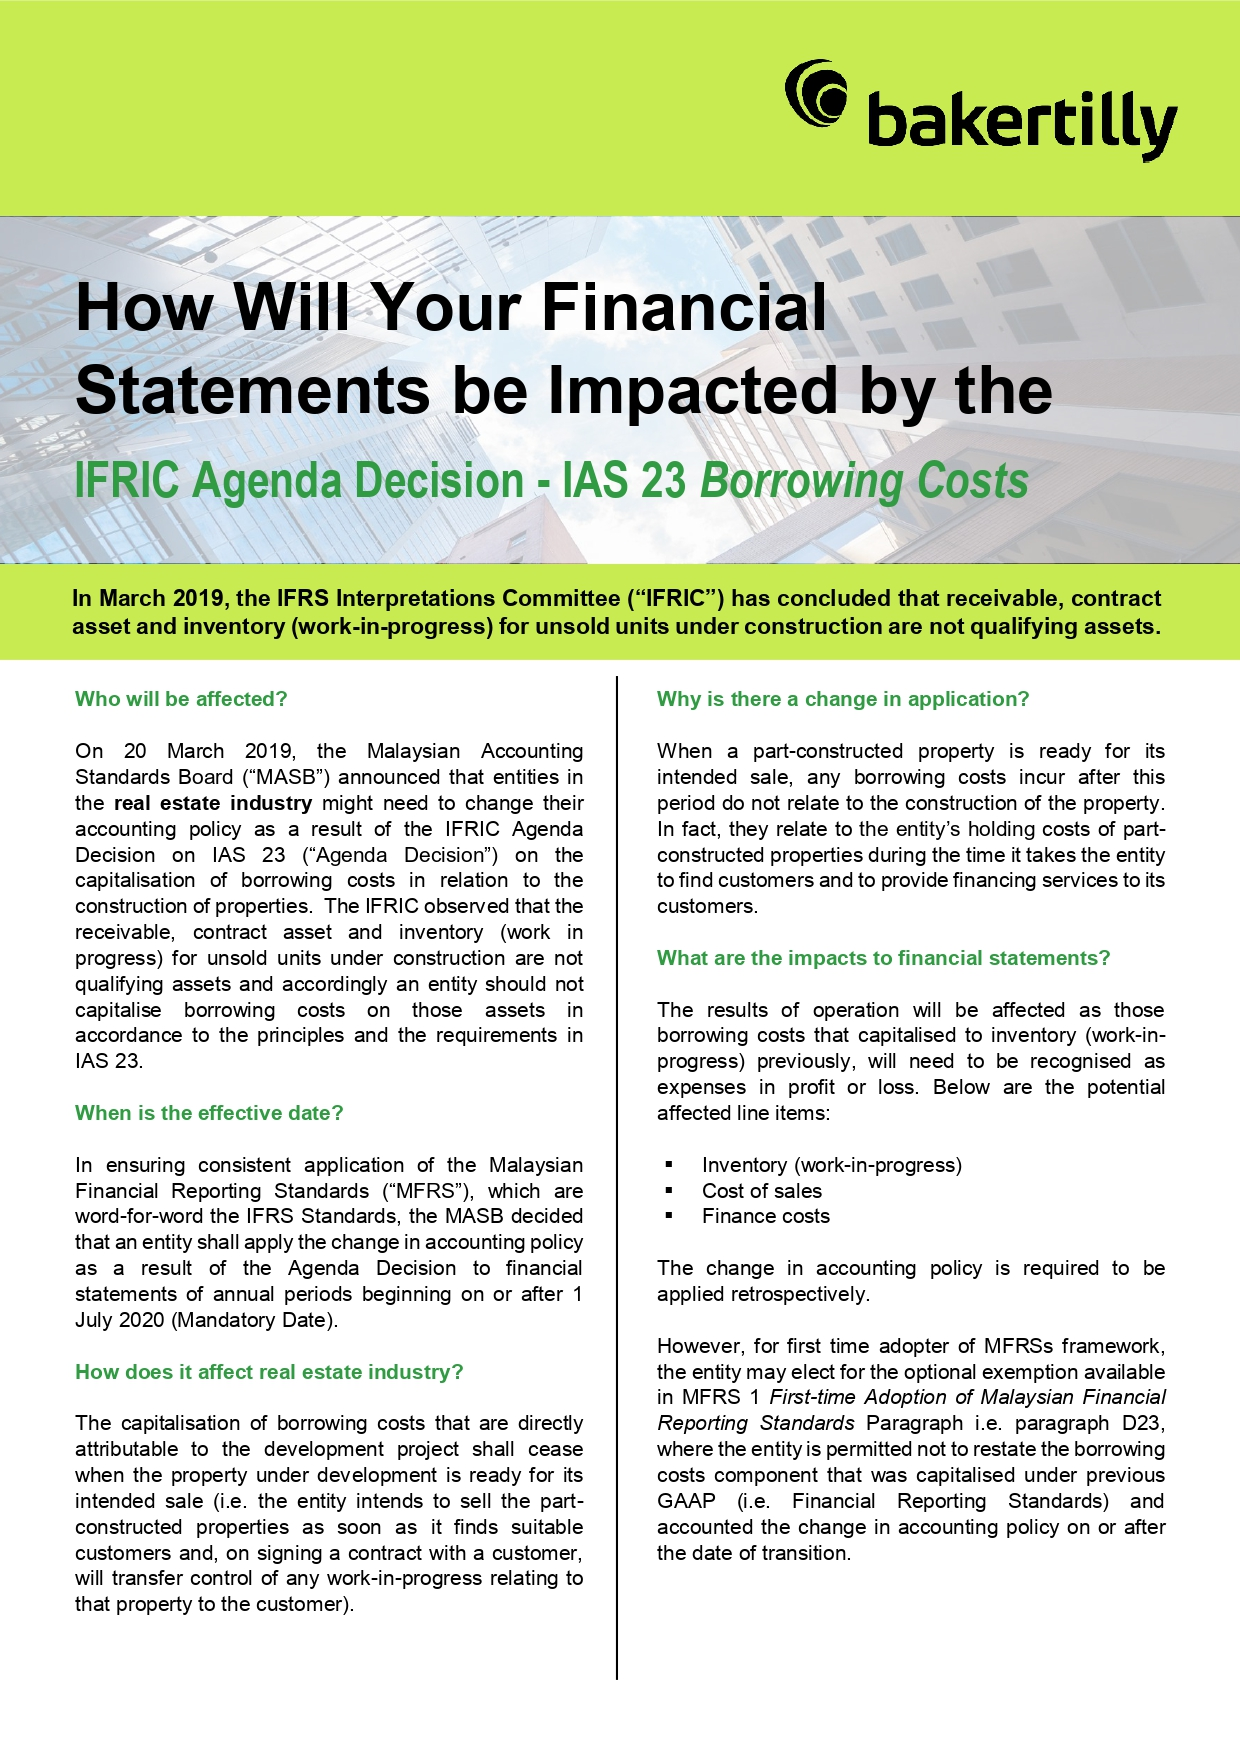 How Will Your Financial Statements be Impacted by the IFRIC